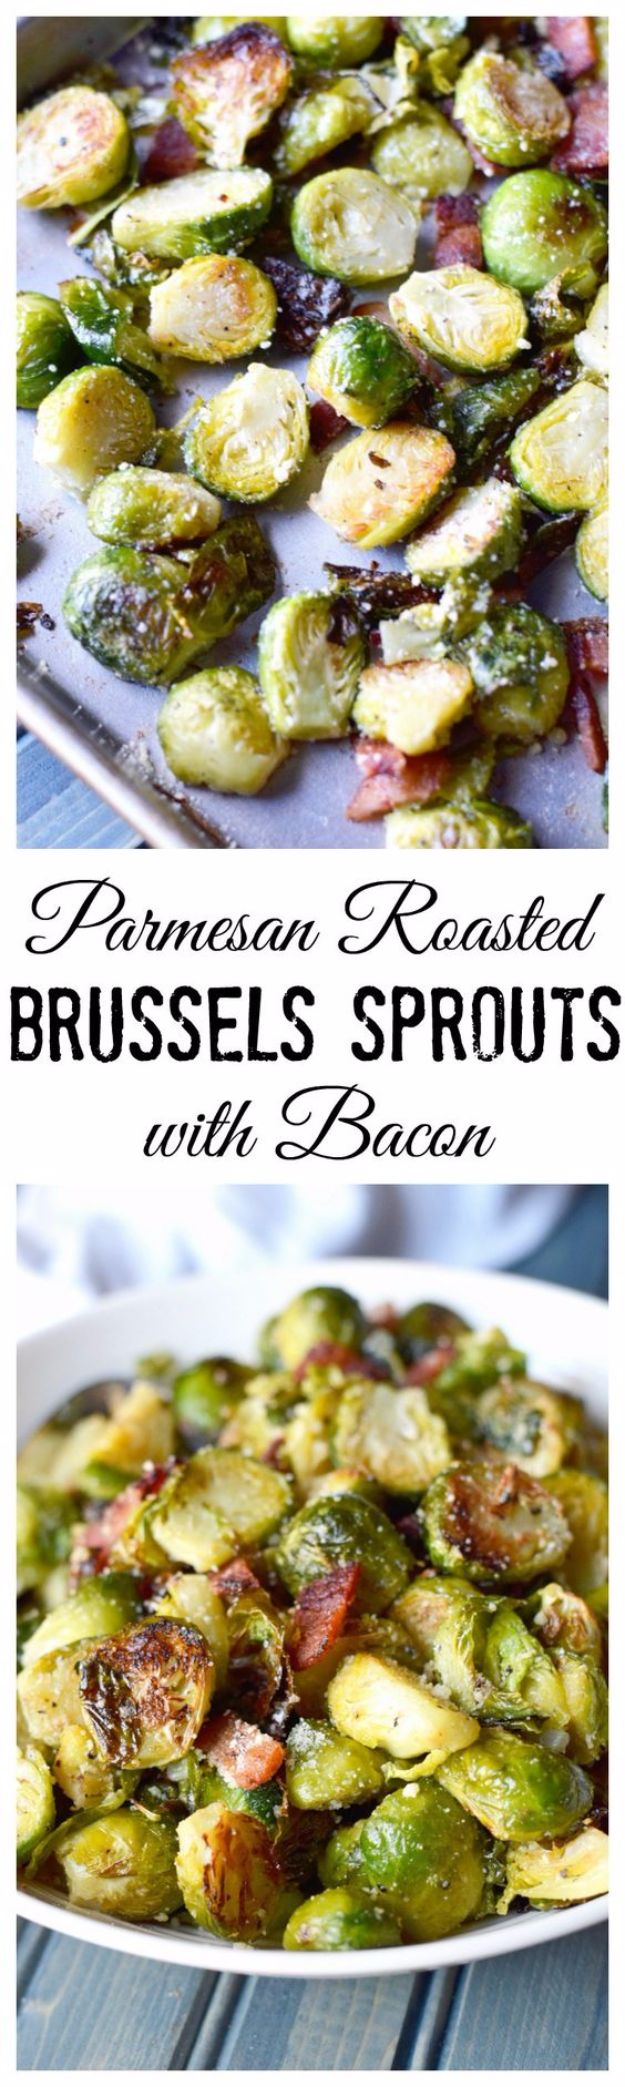 Best Brussel Sprout Recipes - Parmesan Roasted Brussels Sprouts With Bacon - Easy and Quick Delicious Ideas for Making Brussel Sprouts With Bacon, Roasted, Creamy, Healthy, Baked, Sauteed, Crockpot, Grilled, Shredded and Salad Recipe Ideas #recipes